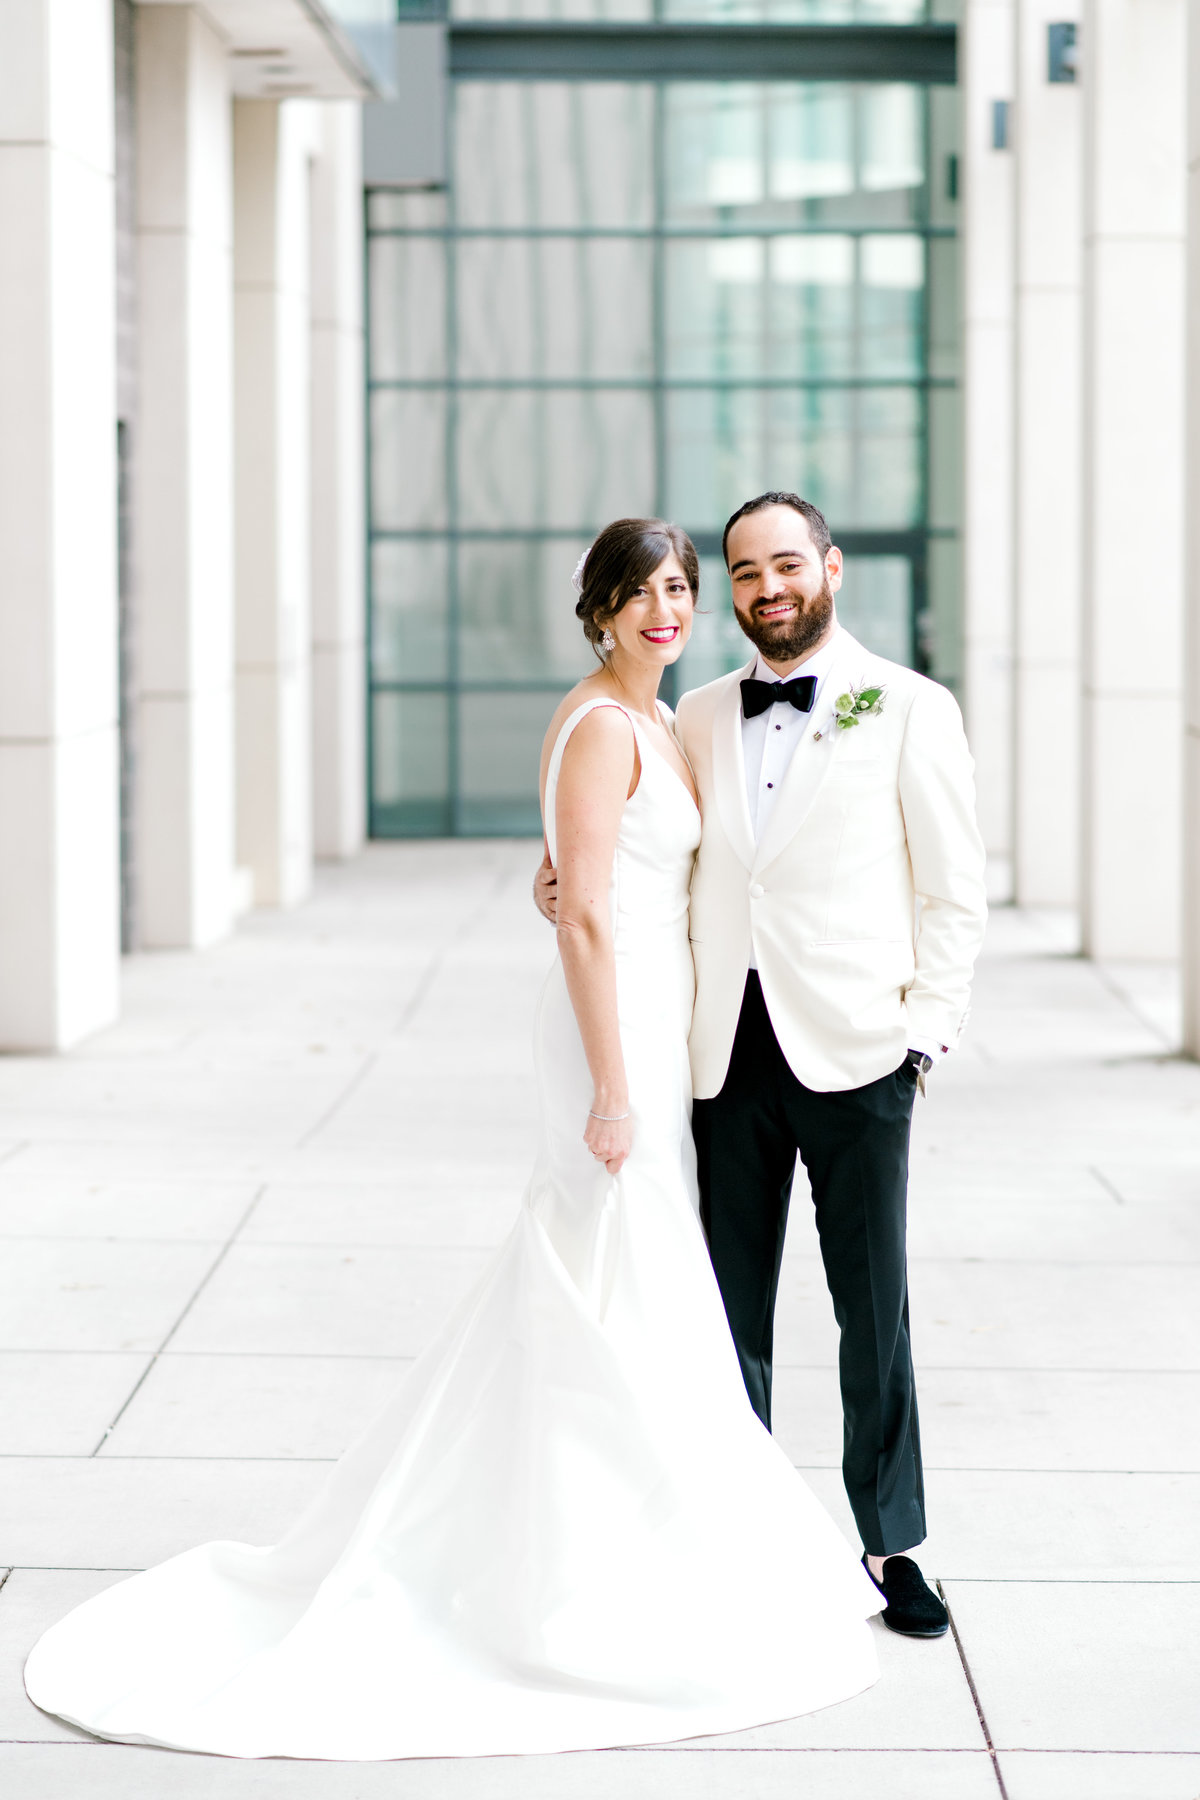 The Mint Museum Wedding | Katheryn Jeanne Photography